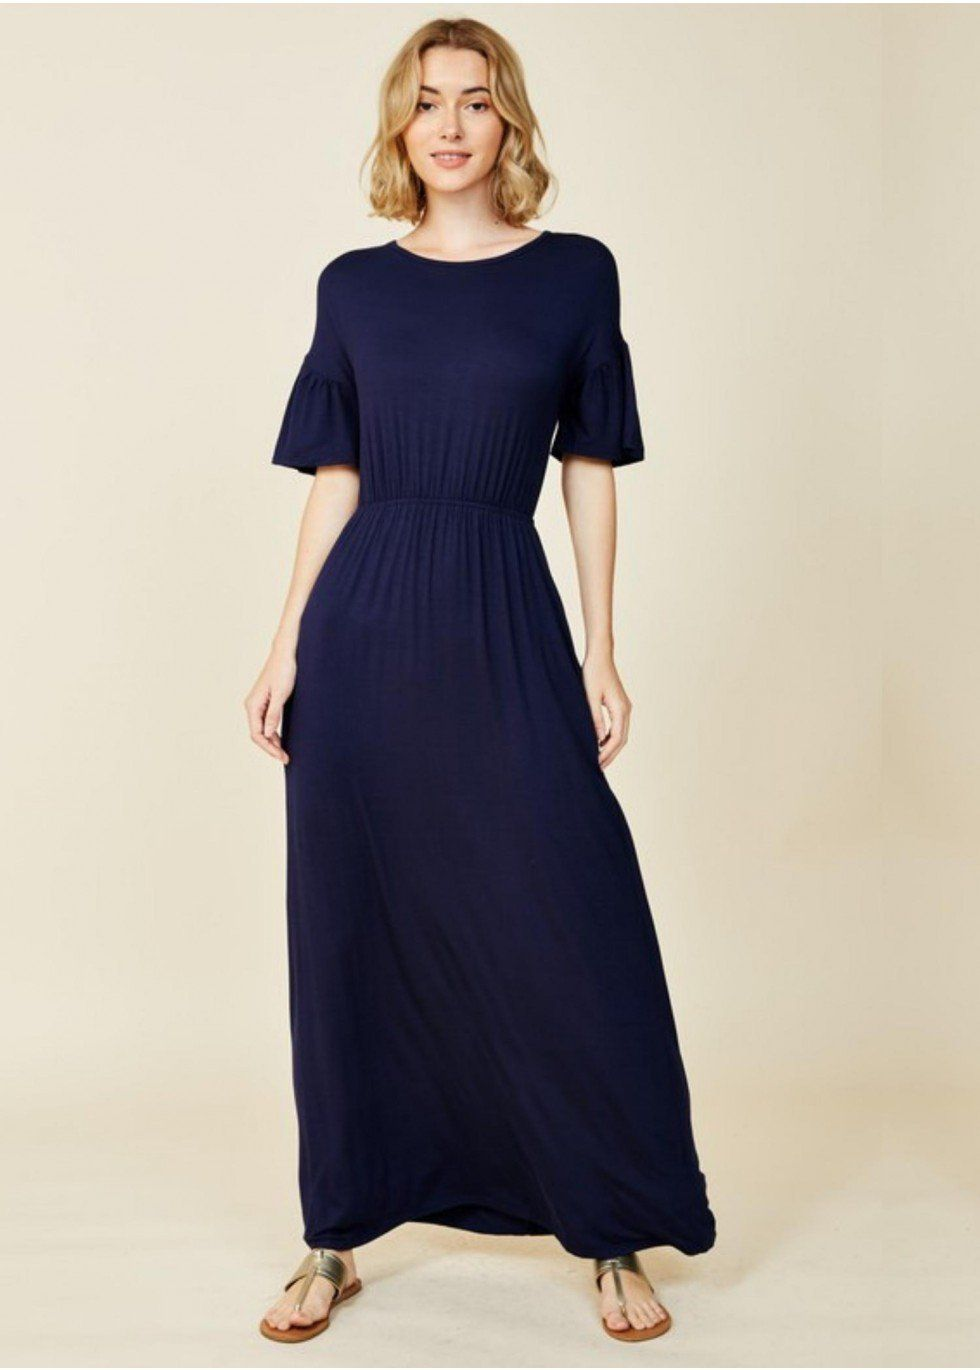 Bell sleeve solid colored maxi dress modli modest